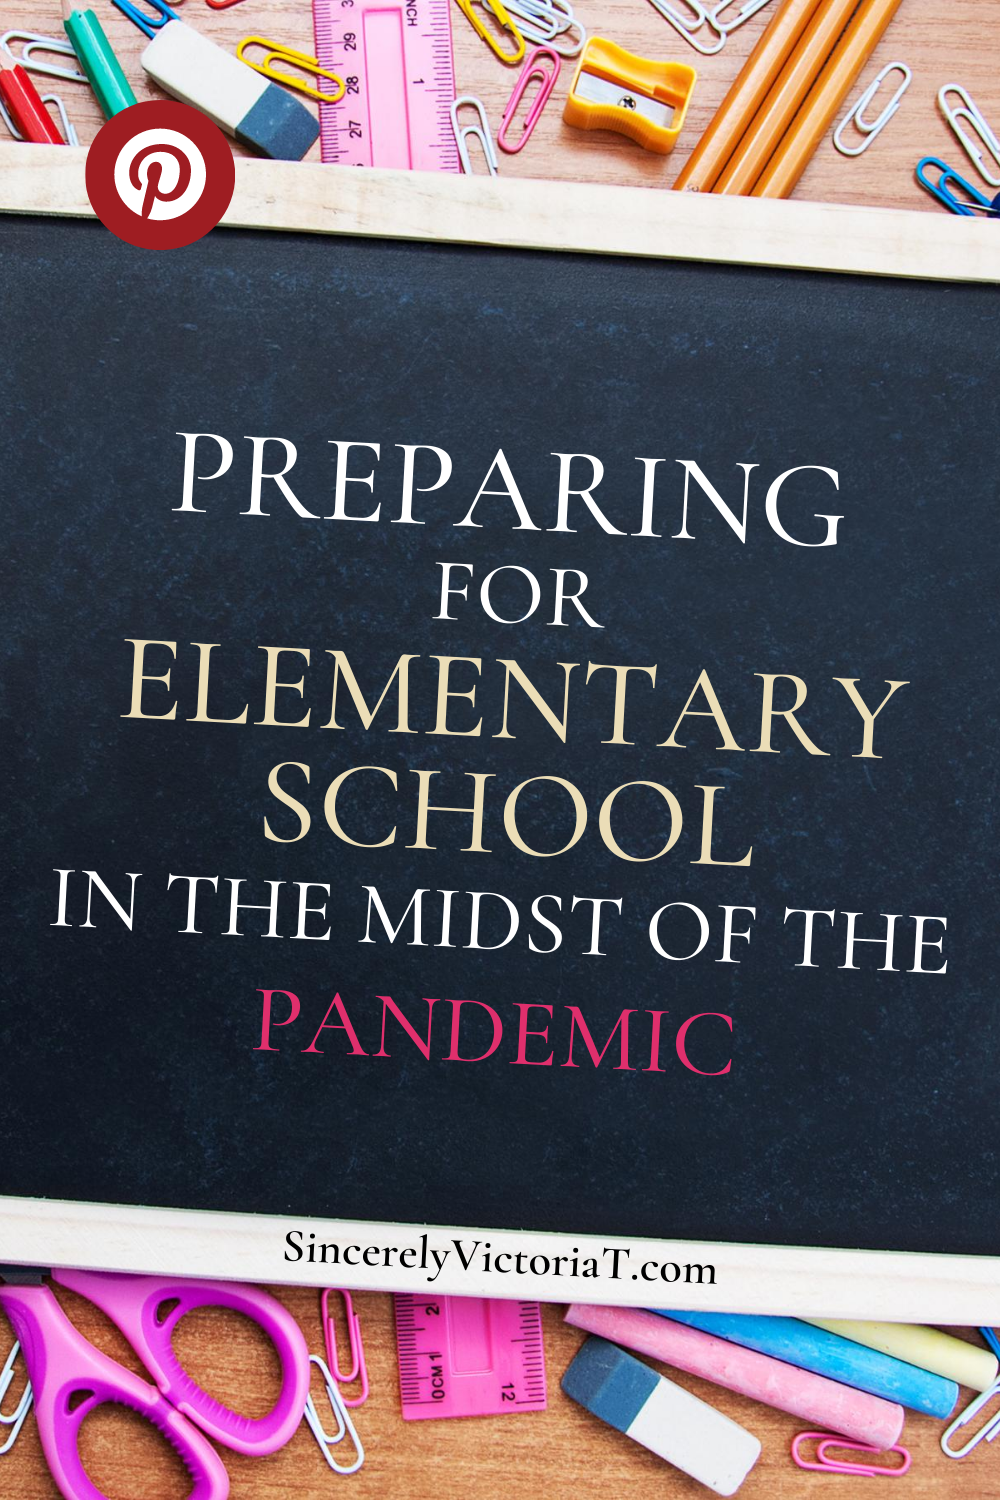 Preparing for Elementary School in the Midst of a Pandemic | SincerelyVictoriaT.com